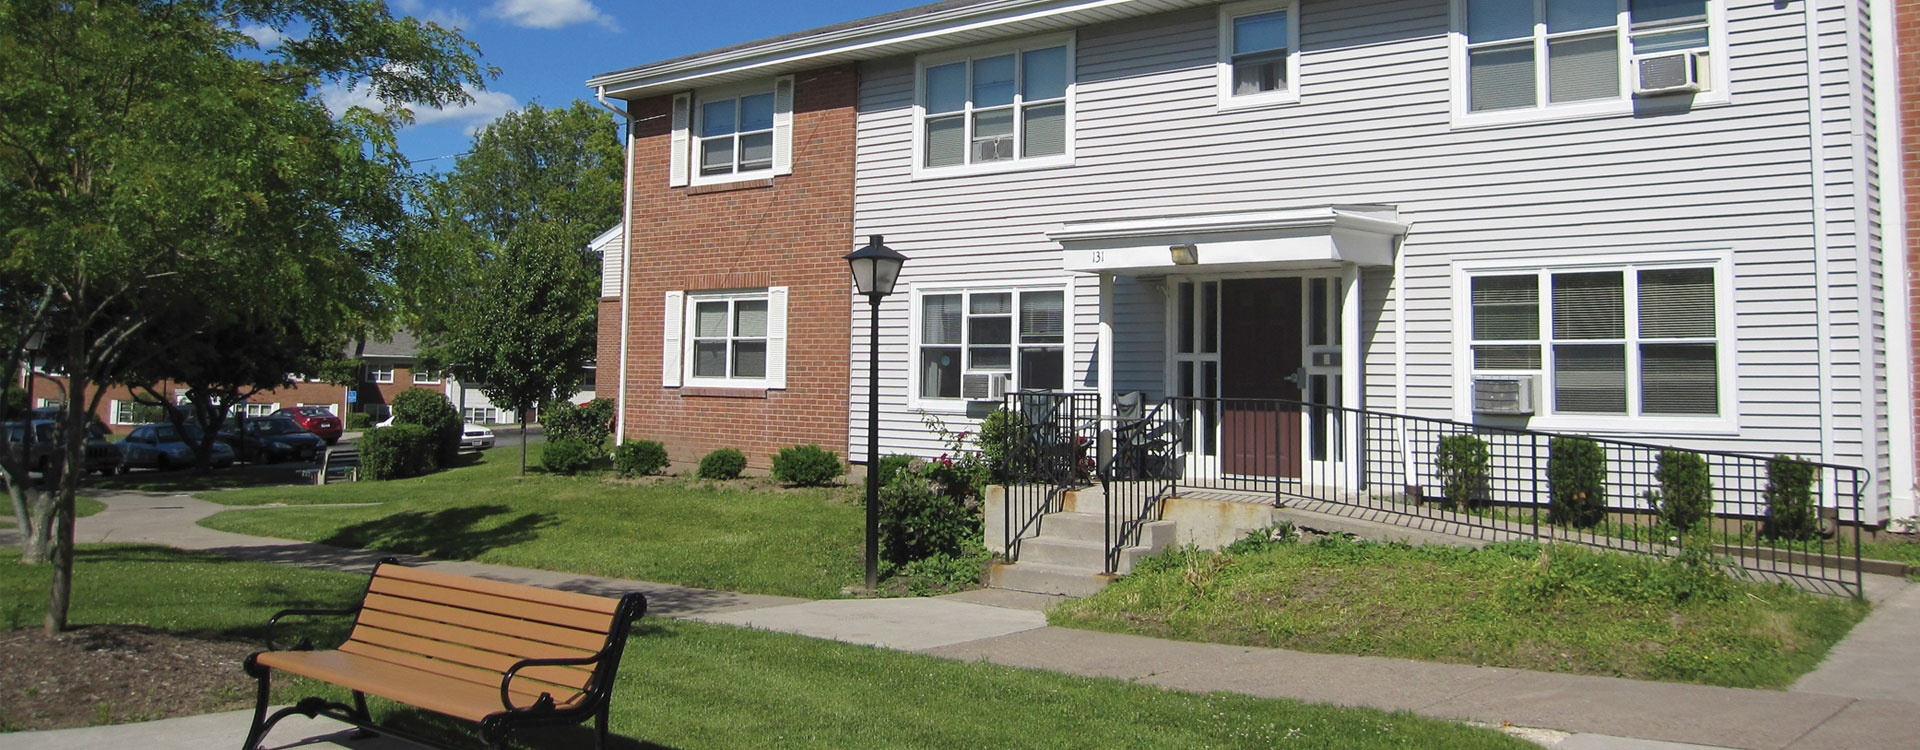 Rochester Highlands | Apartments in Henrietta, NY - Renters ...